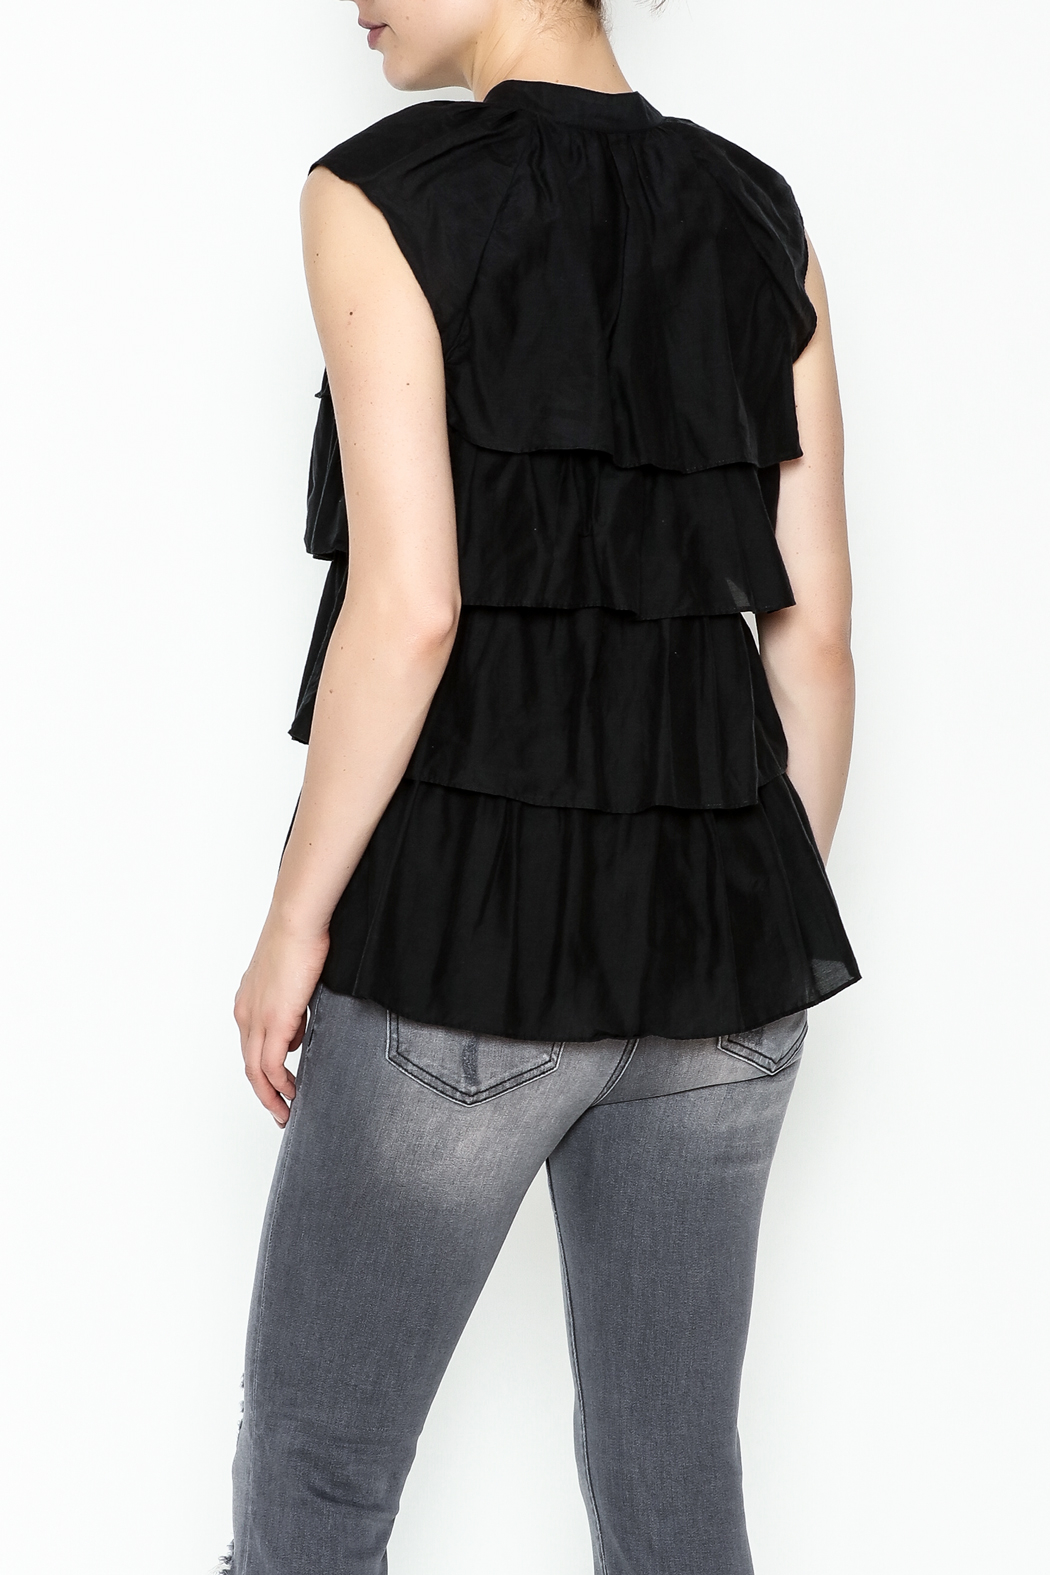 BCBG Max Azria Ruffled Black Blouse - Back Cropped Image